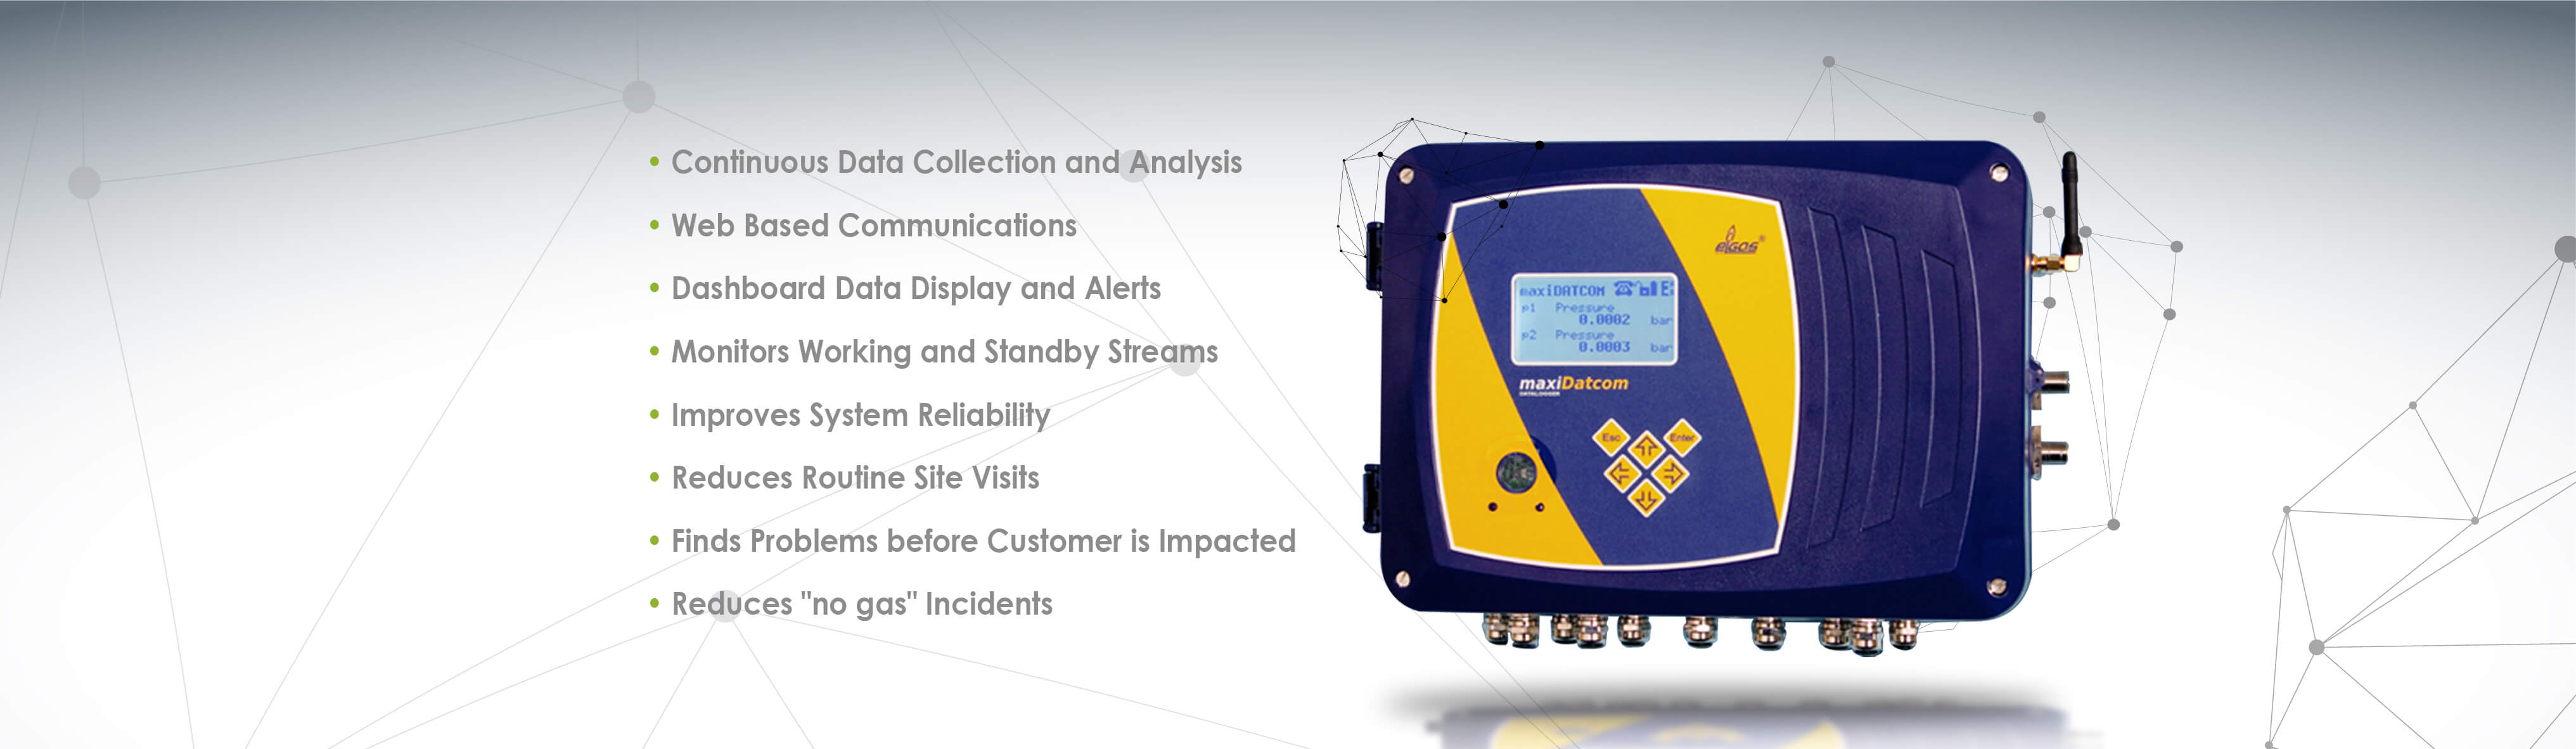 Elgas MaxiDatcom With Sensor Log Software